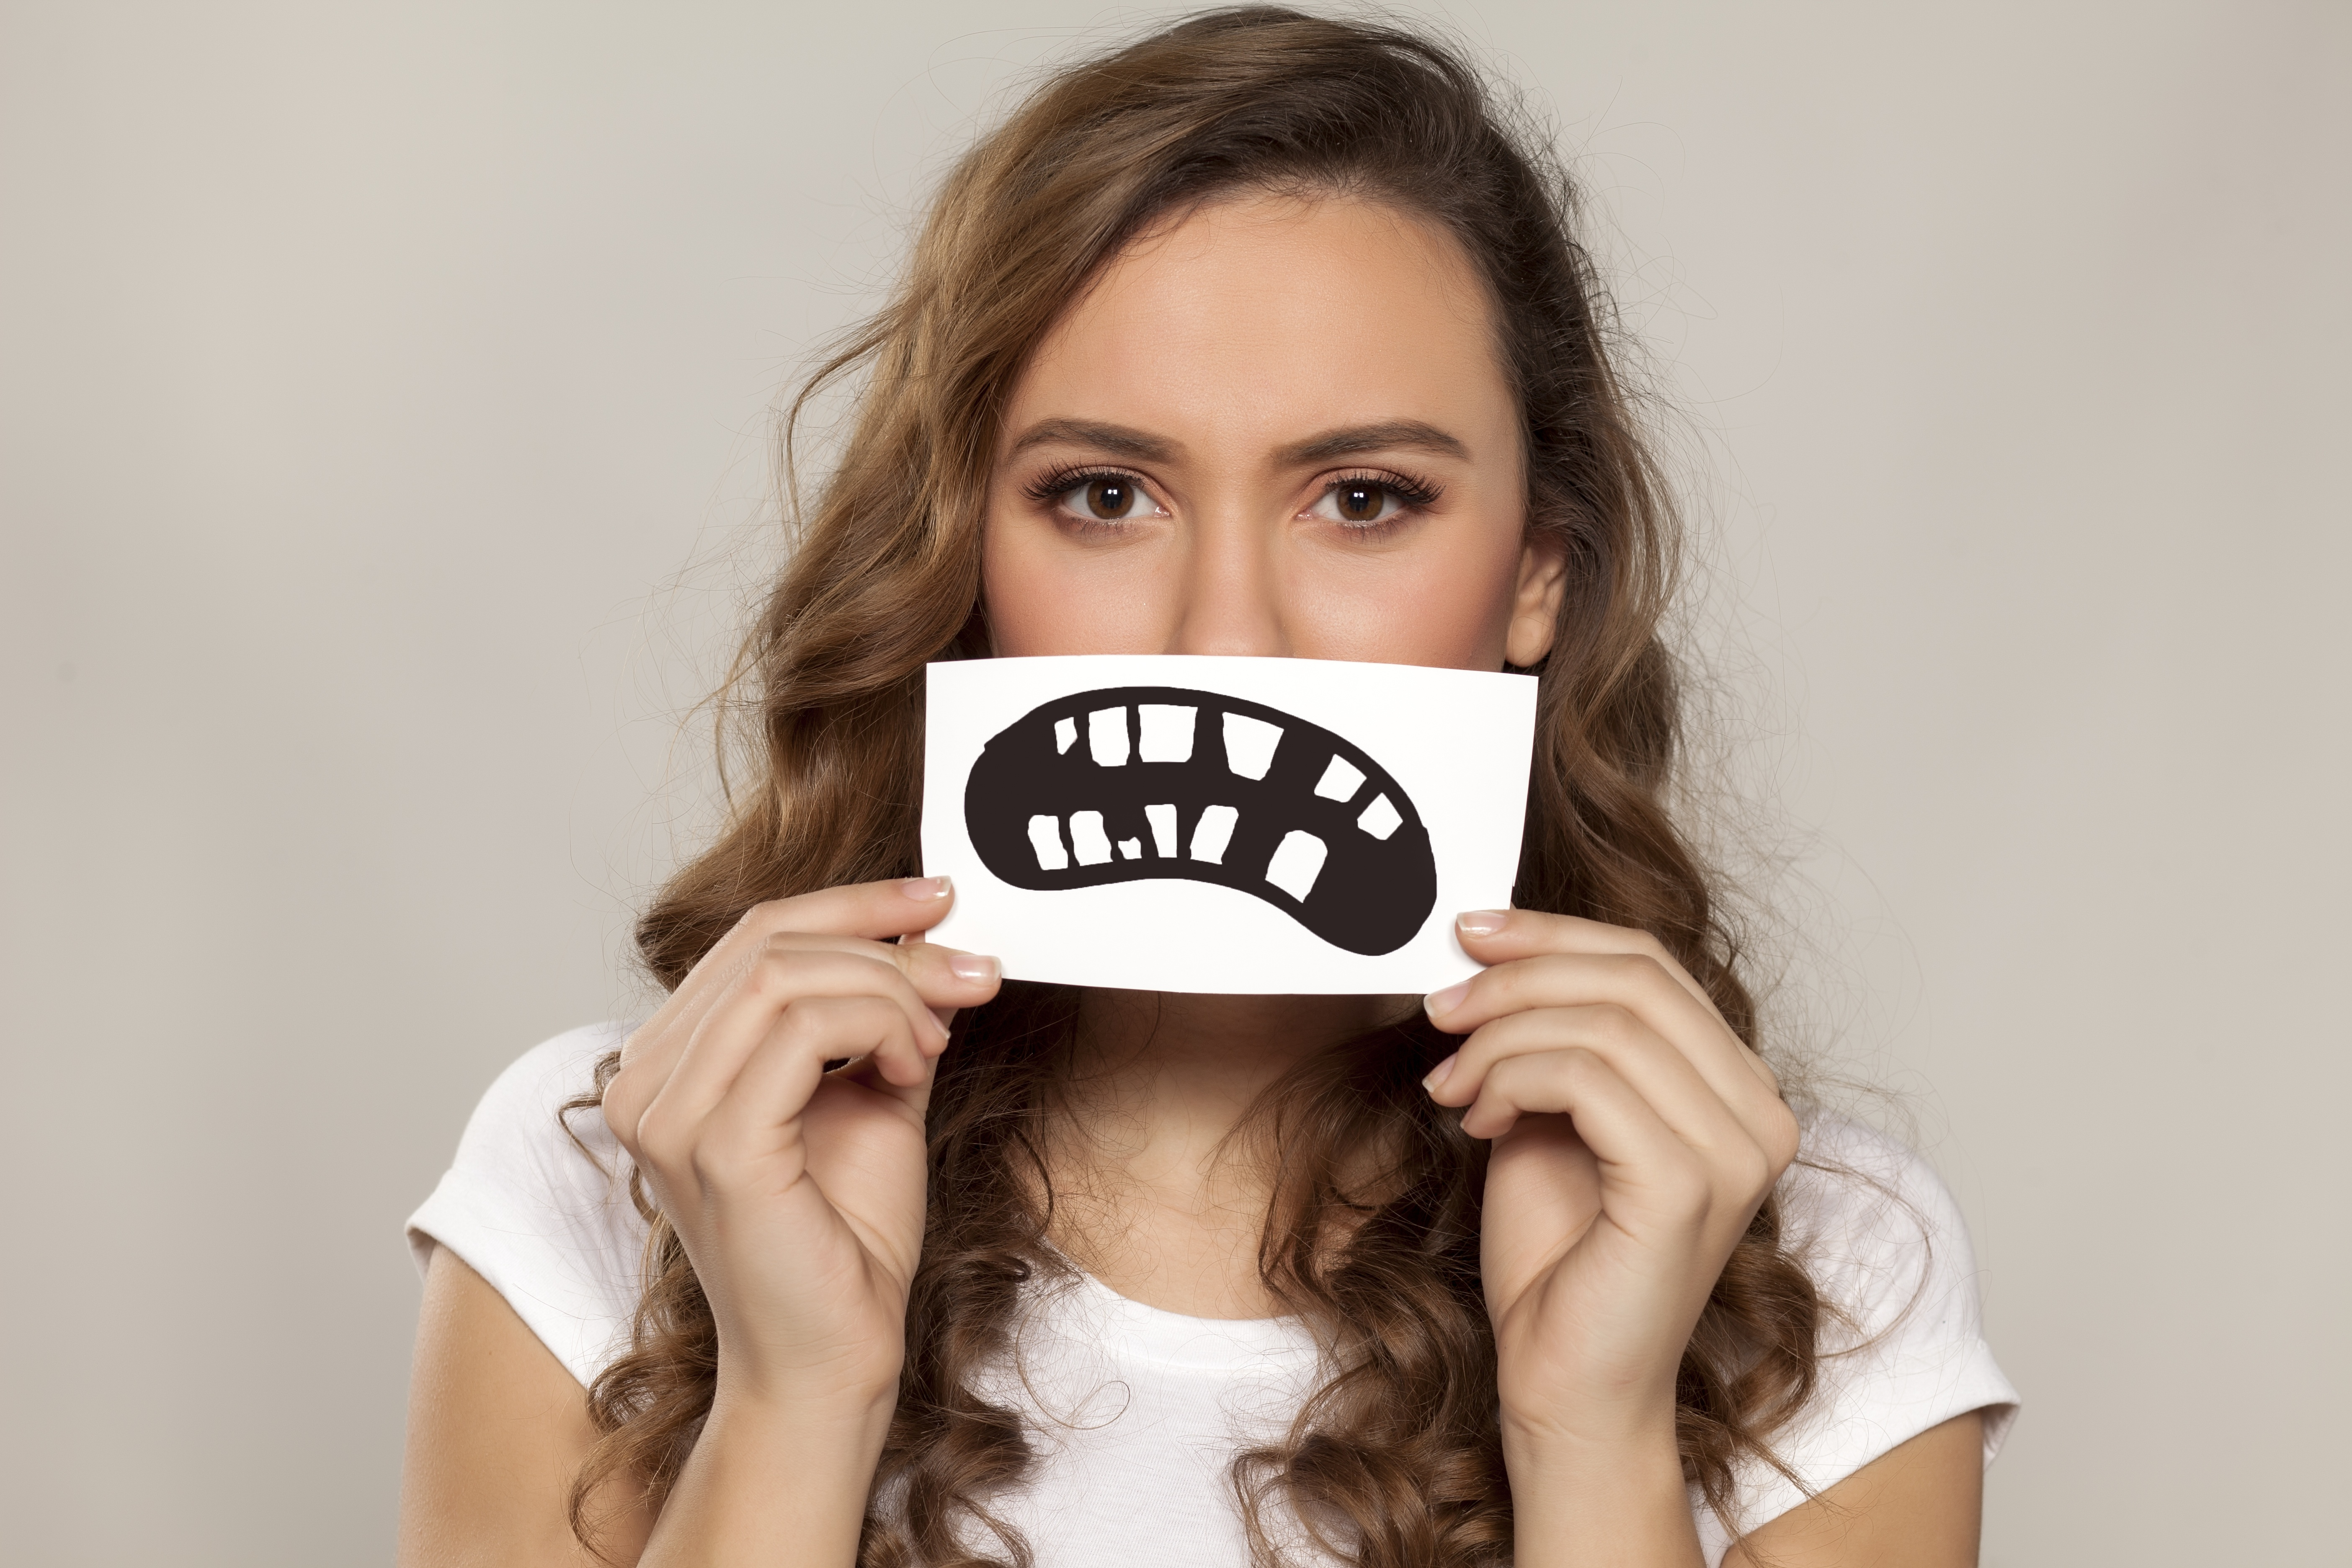 Disorders in toothdevelopment - what you can do